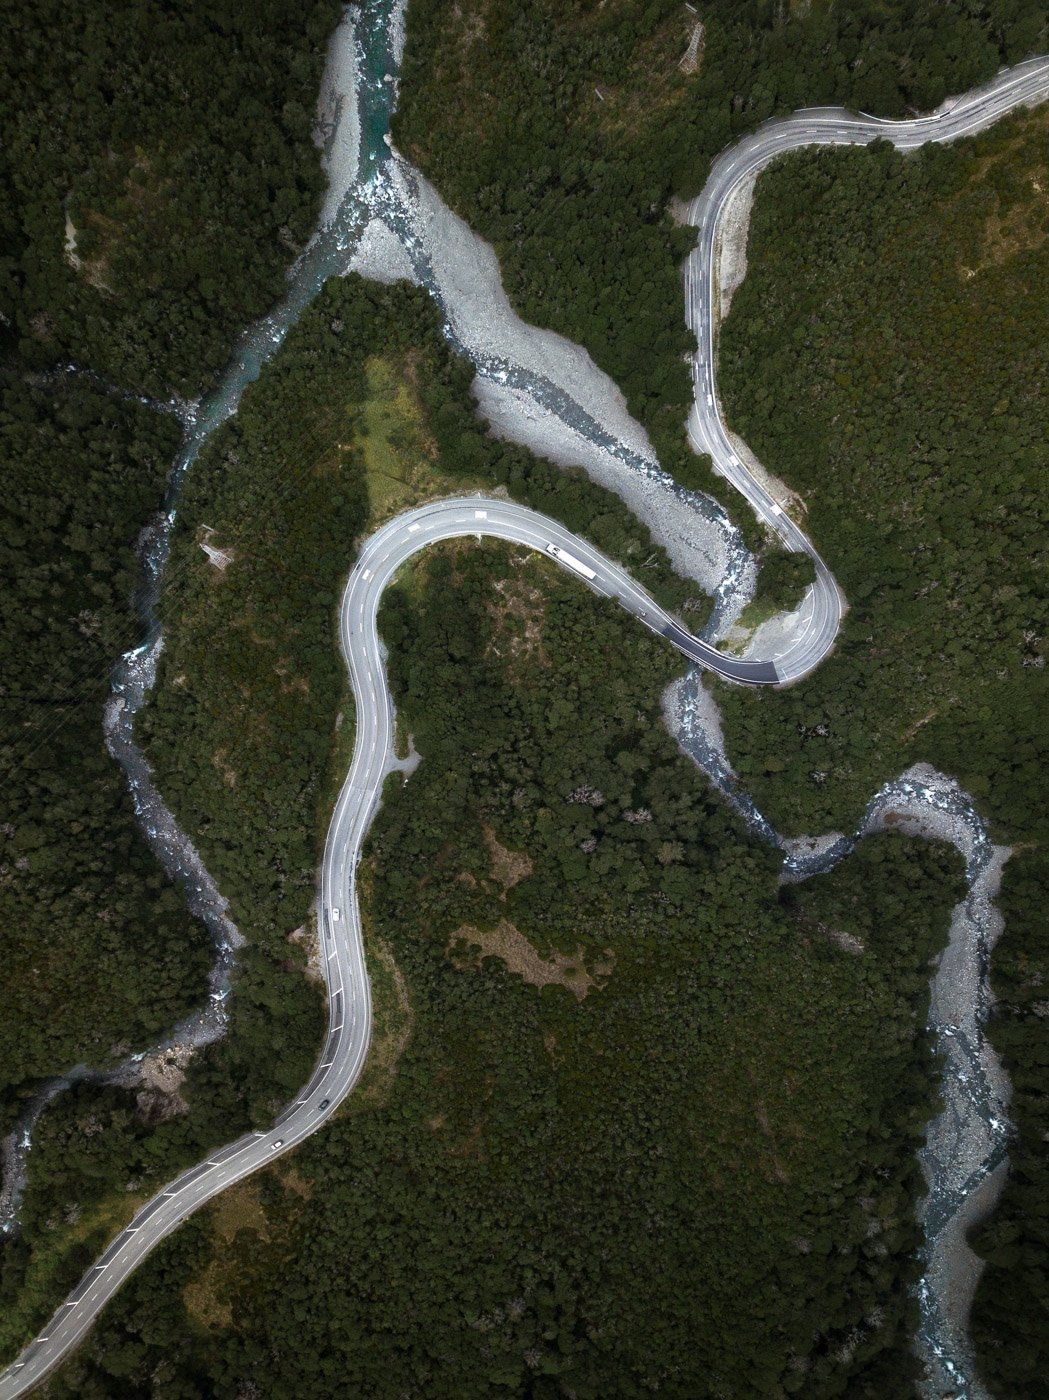 THINGS TO DO IN ARTHUR'S PASS